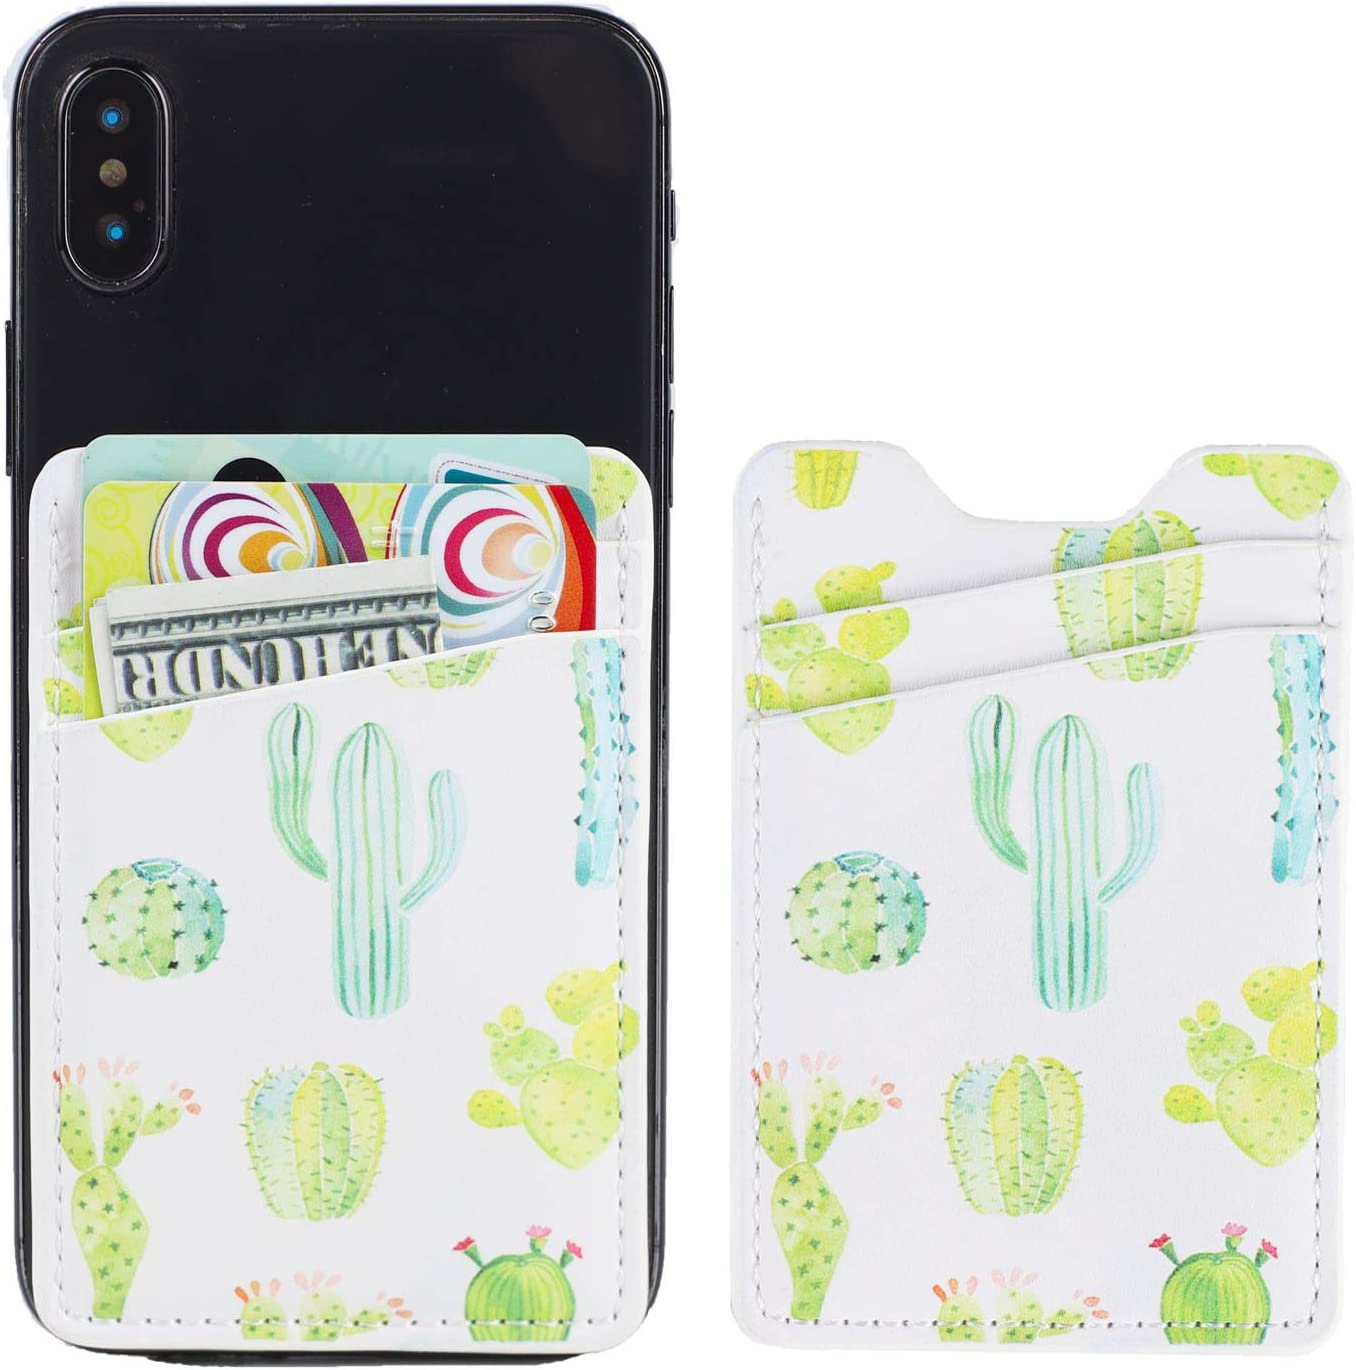 2Pack PU Leather Phone Pocket,Cell Phone Stick On Card Wallet,Credit Cards/ID Card Holder(Double Secure) with 3M Sticker for Back of iPhone,Android and All Smartphones (2 Green Cactus)